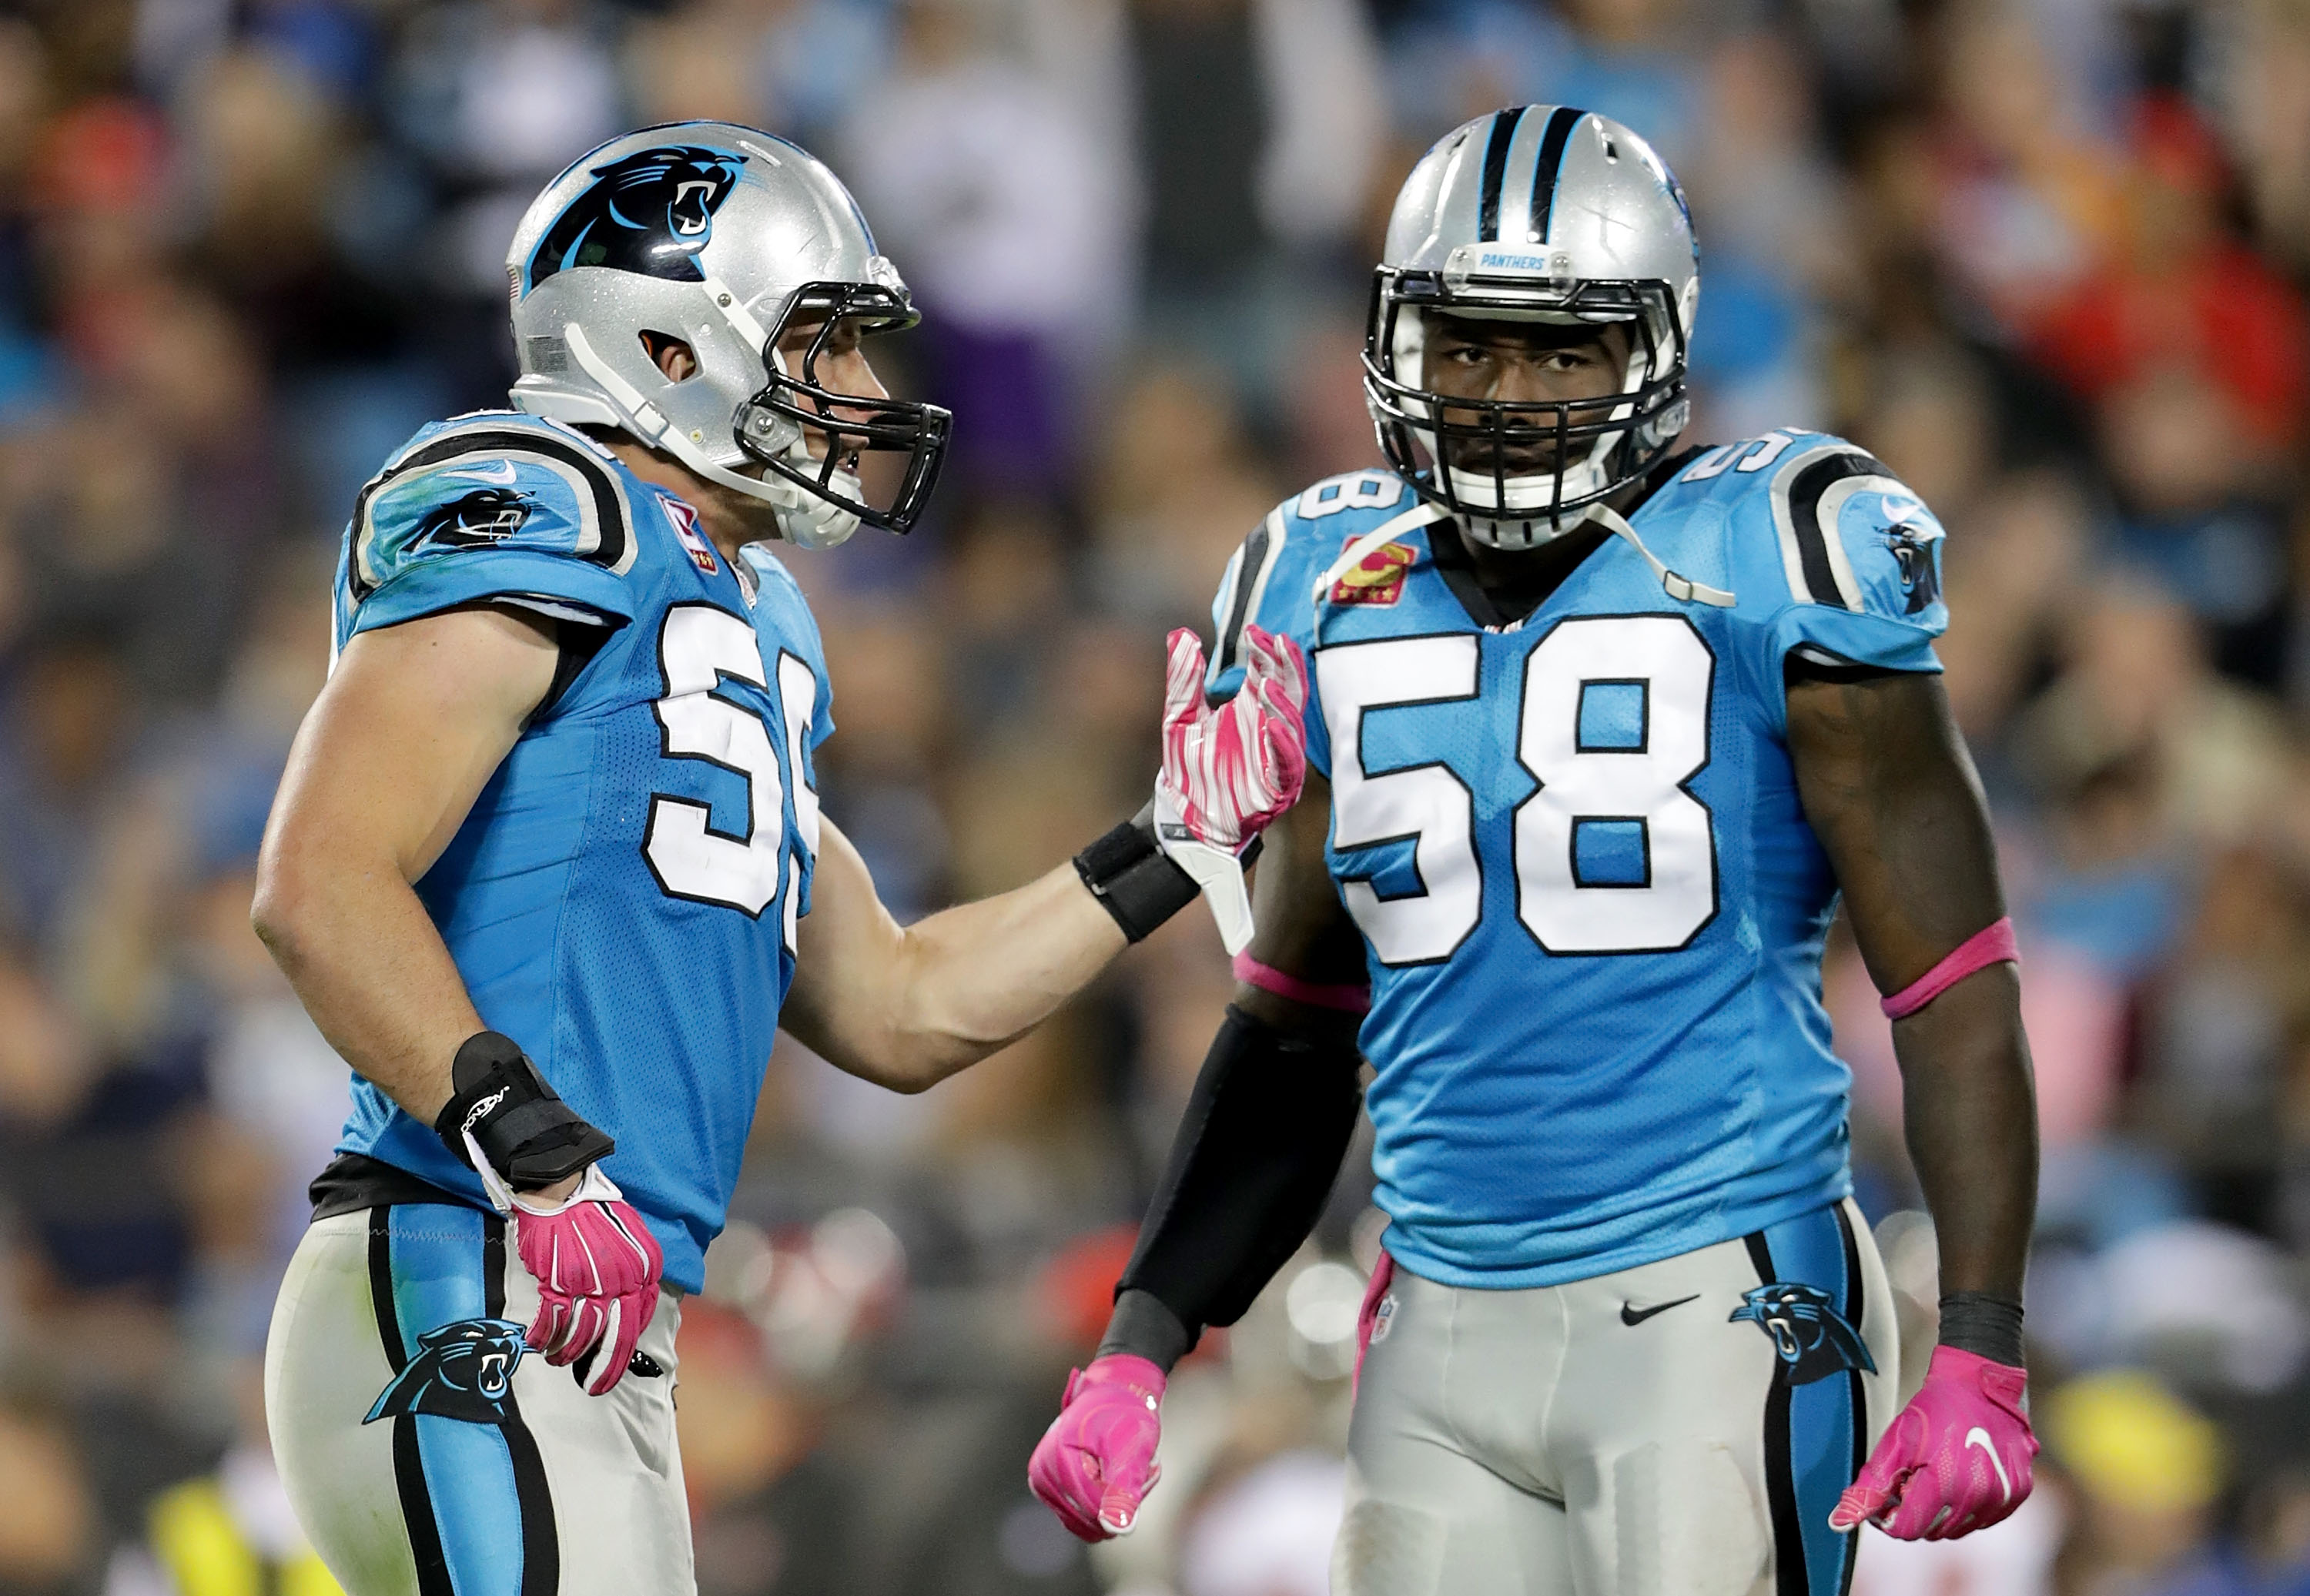 Carolina Panthers: Ranking the Top 5 linebackers in franchise history